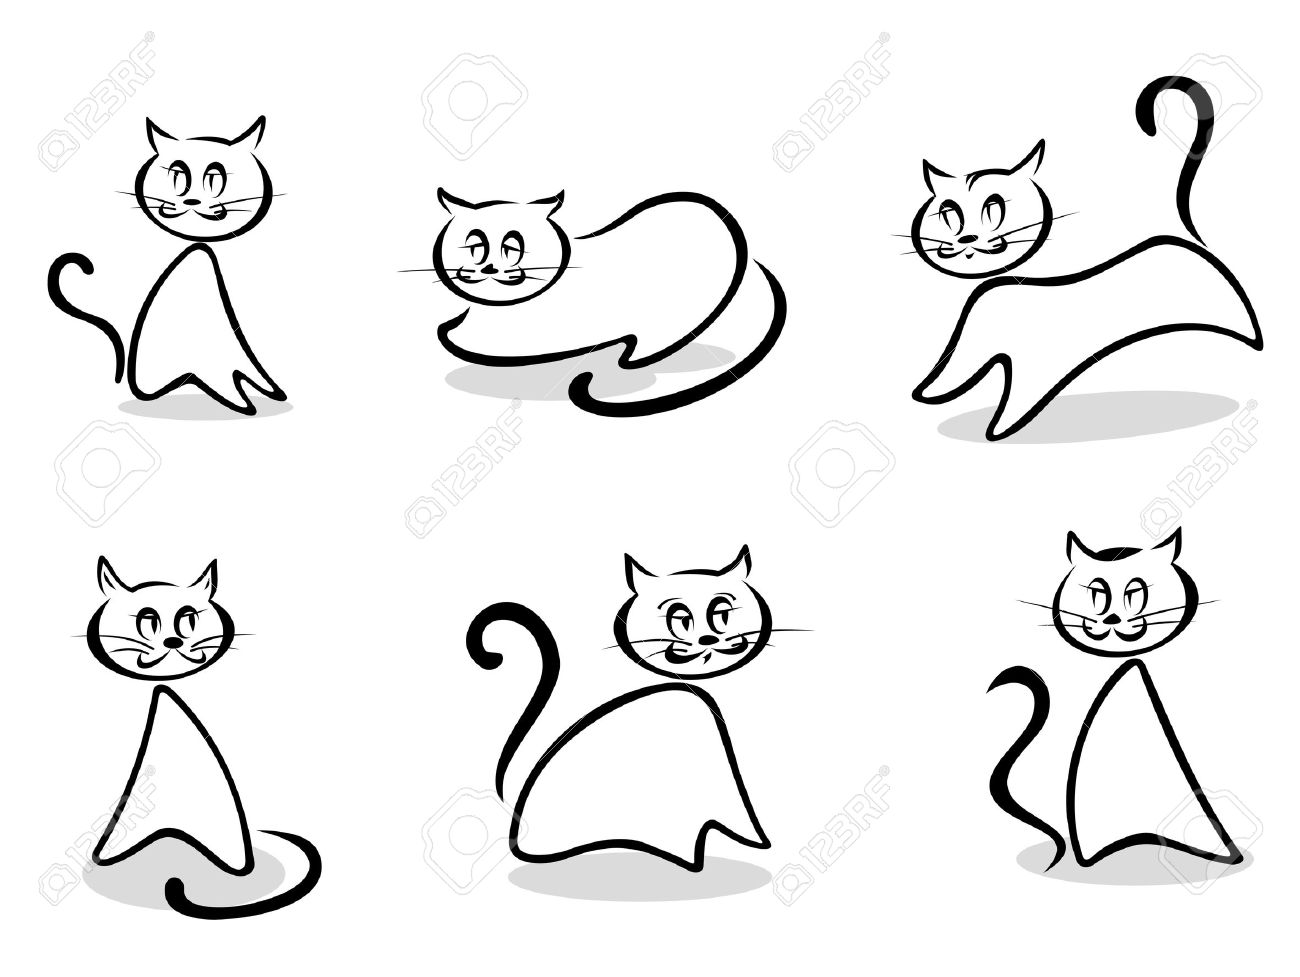 Cats and kittens symbols and emblems for pet design Stock Vector - 13009520